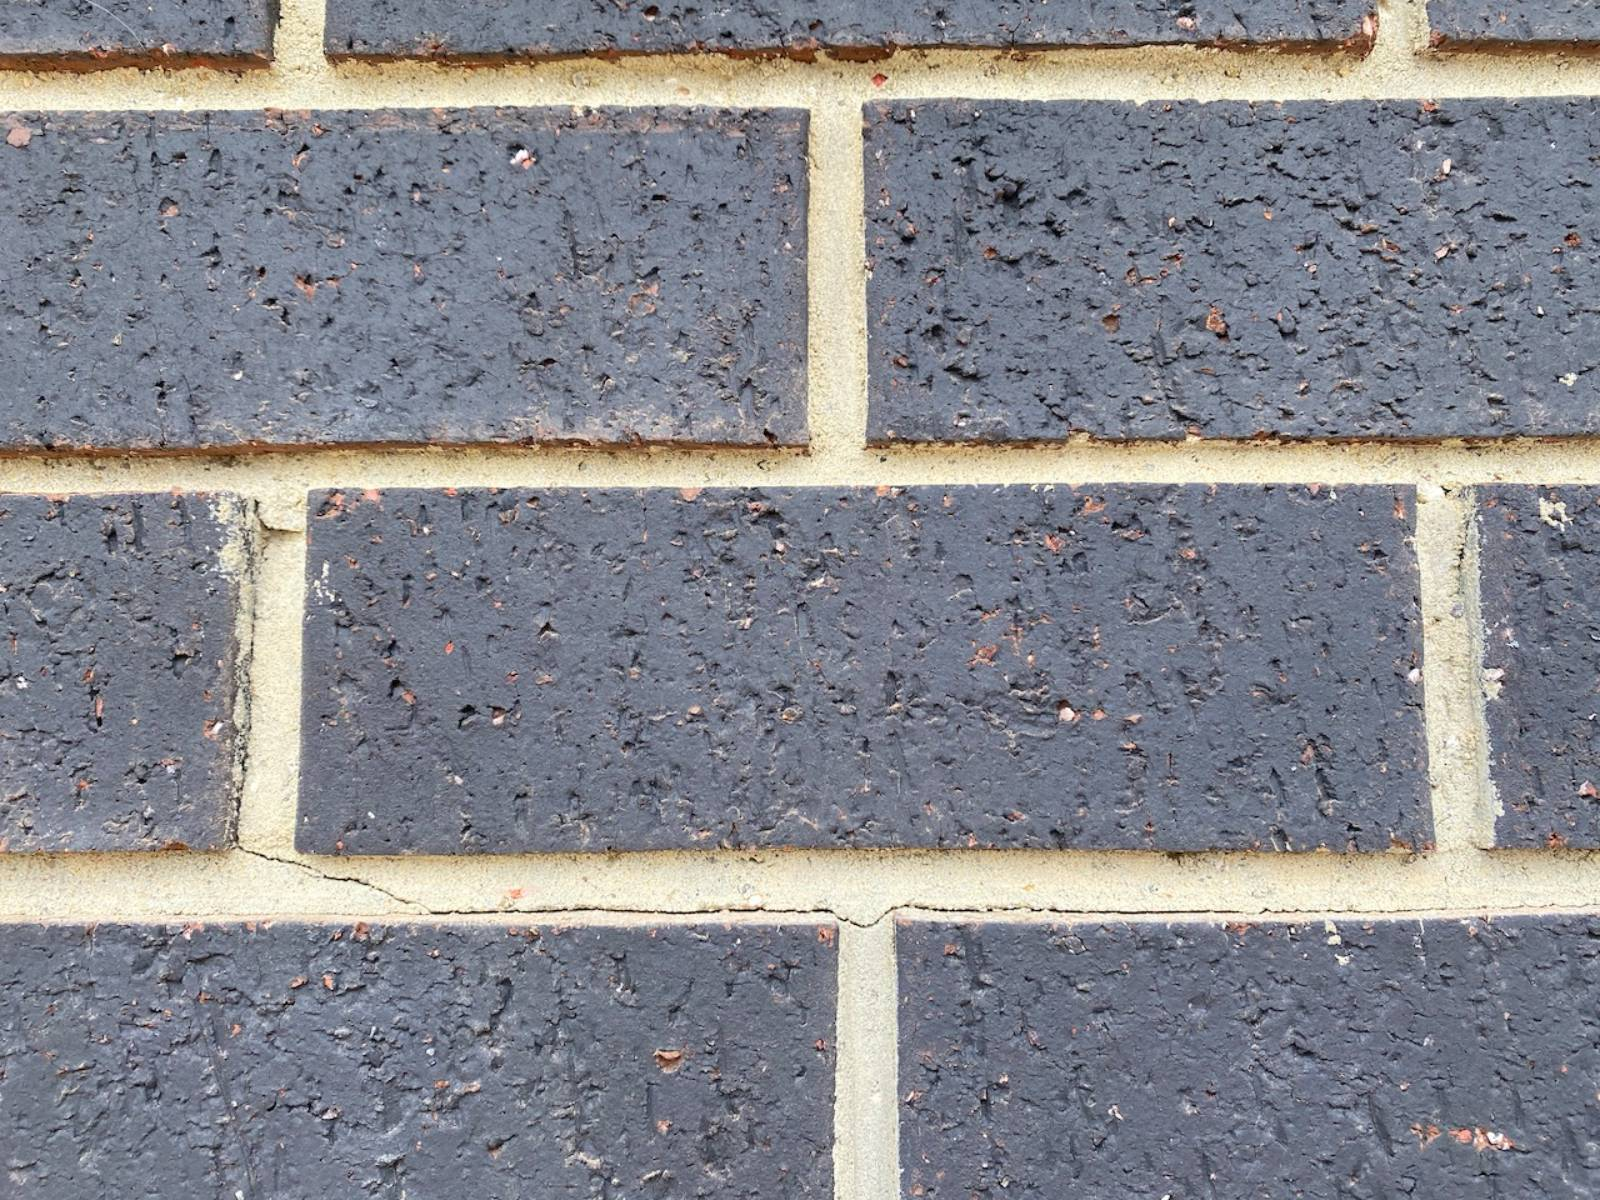 Cracks in Cement between bricks. Reason for Concern?